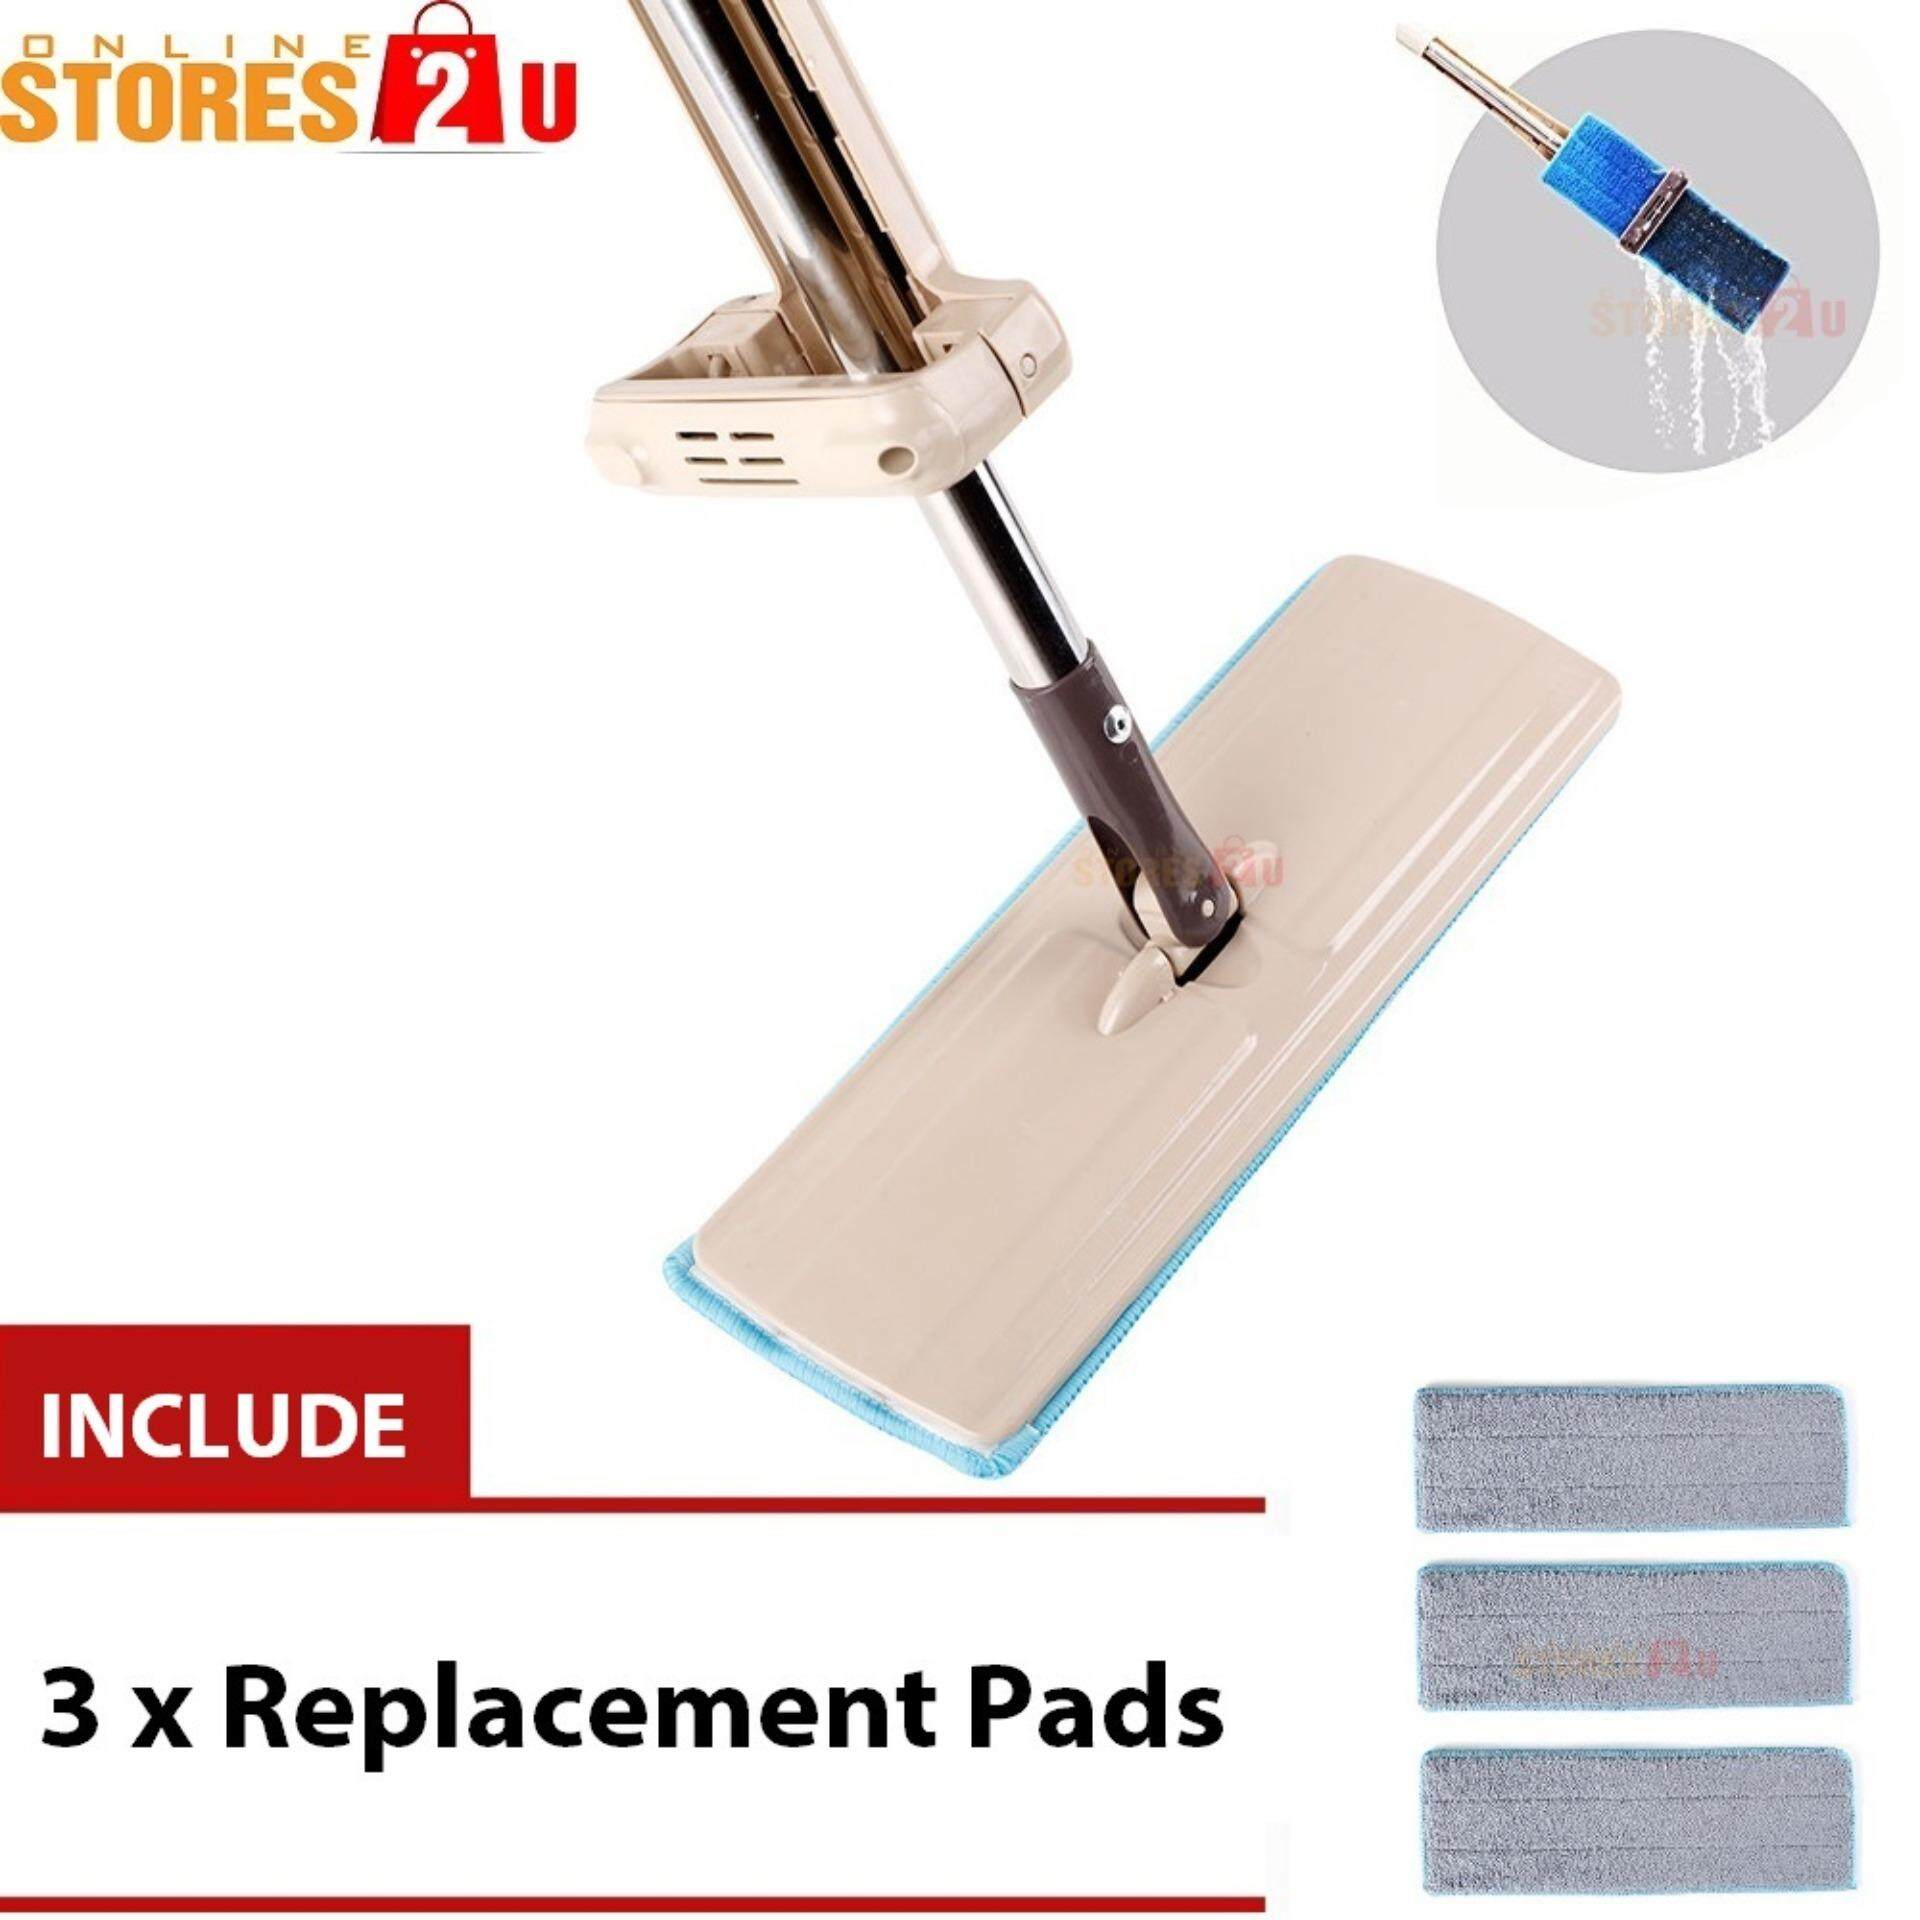 [Stores2u] Microfiber Flat Lazy Mop Hands Free Wash 360 Spin Floor Mop Include 3 Replacement Pads (35cm)